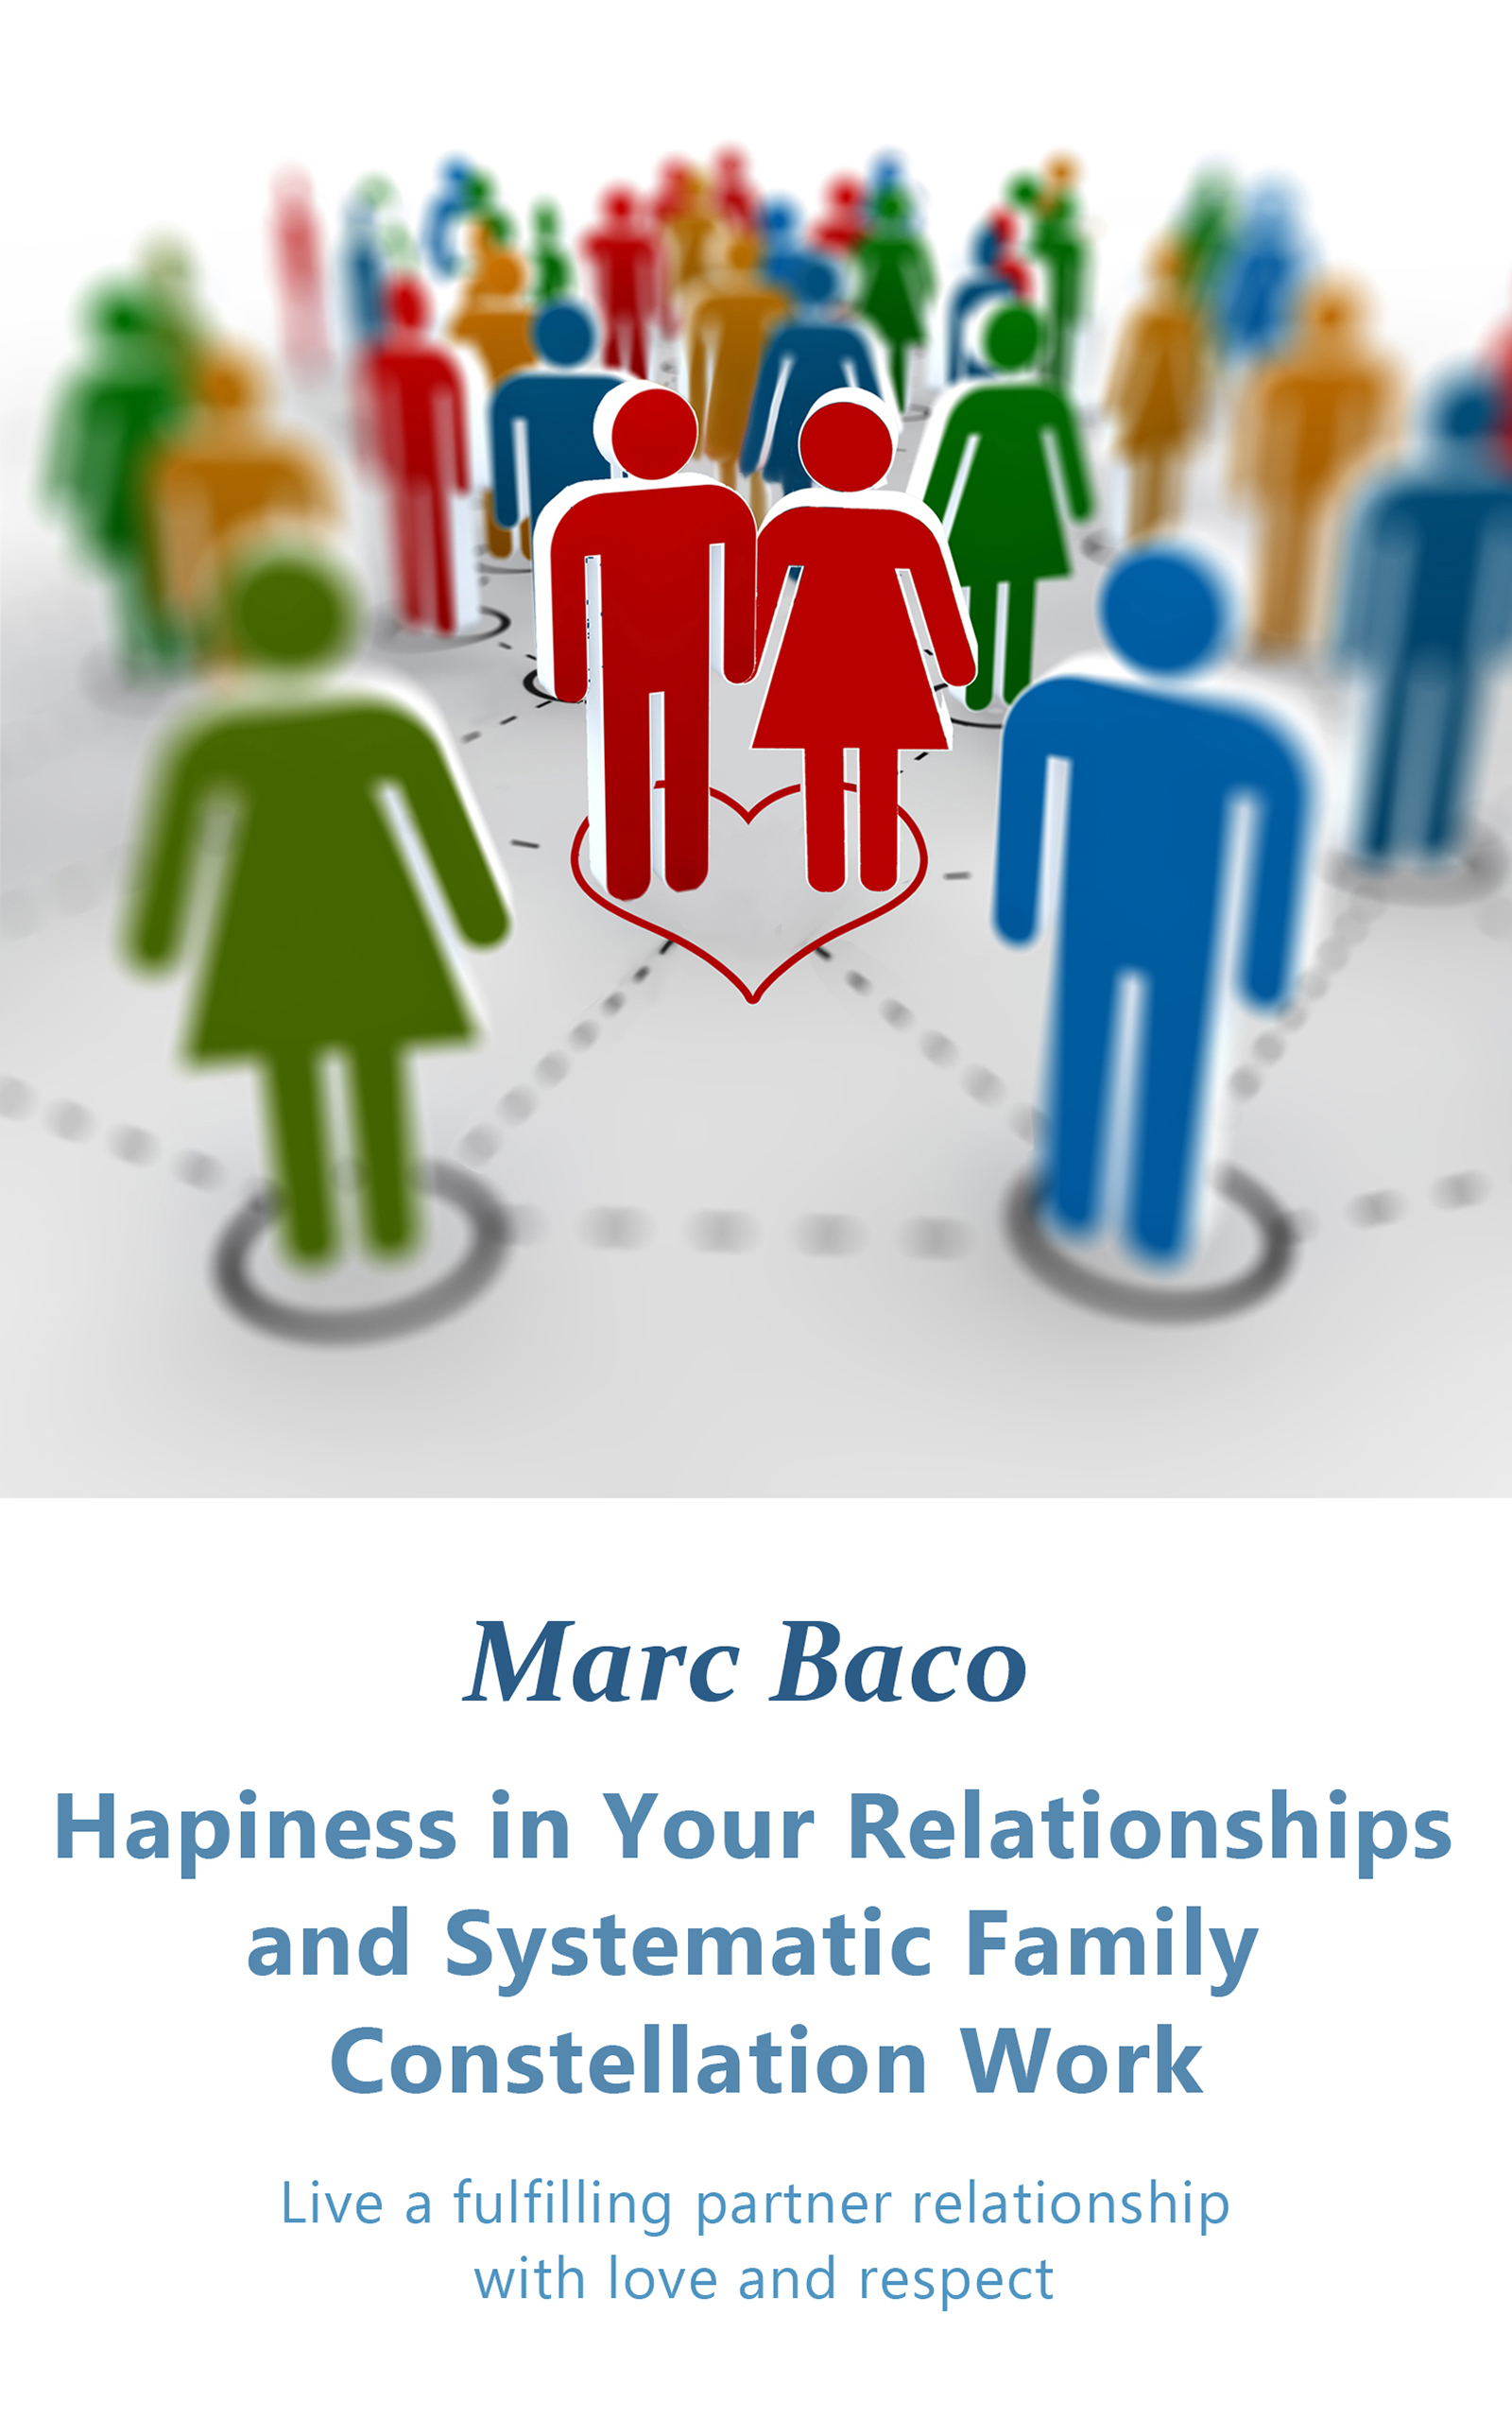 Happiness in your relationships and systemic family constellation work